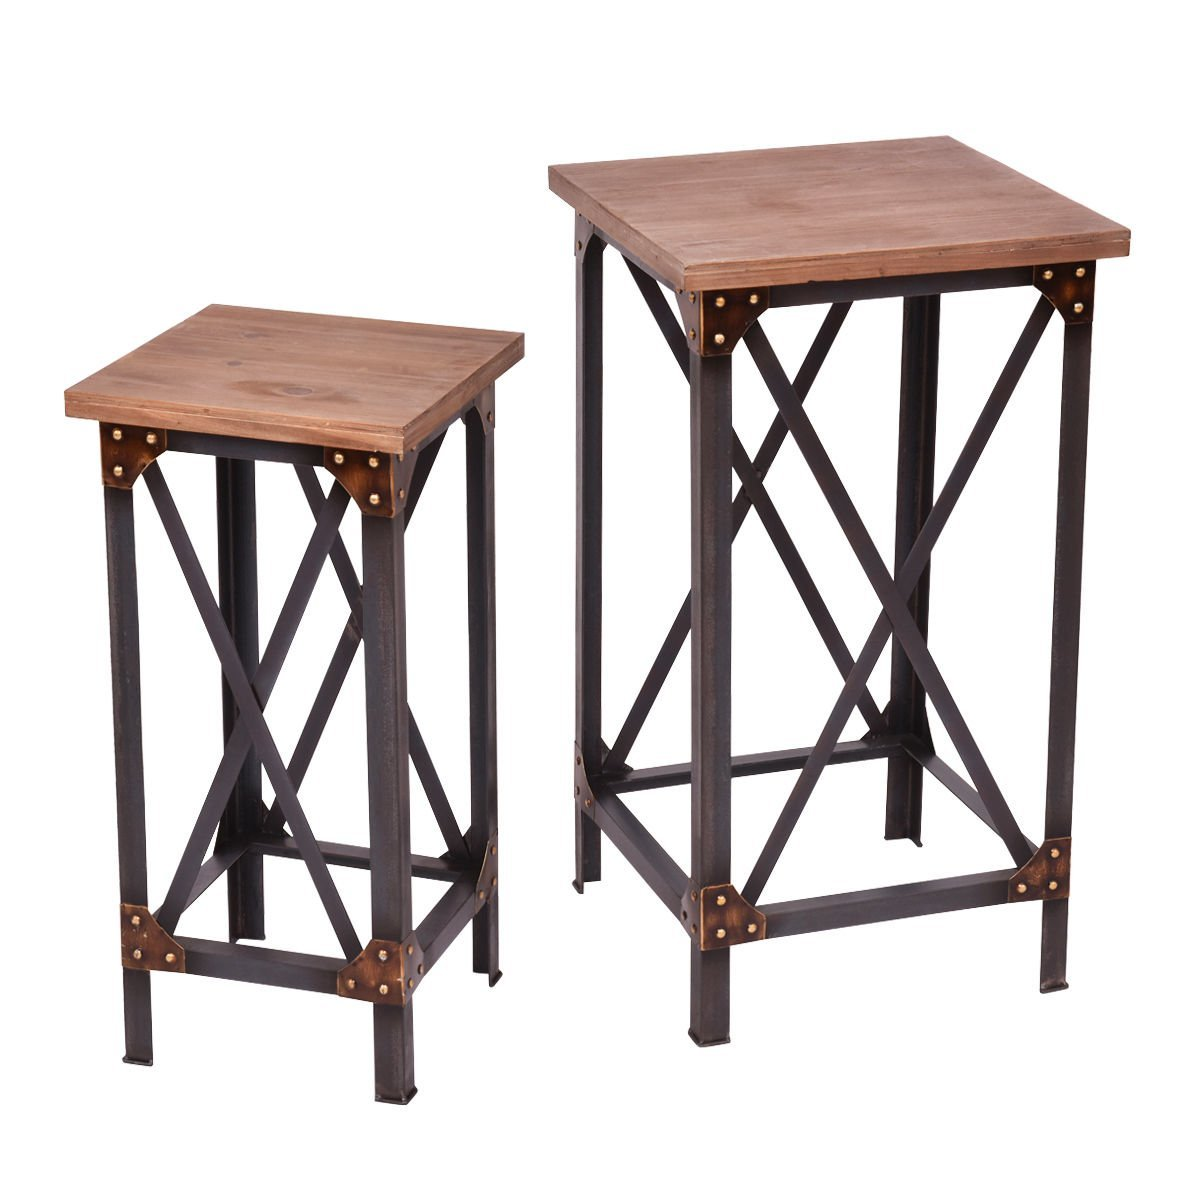 rustic wood accent tables find side table get quotations set metal industrial end plant display stands formal dining chairs white acrylic couch covers target patio sectional gray